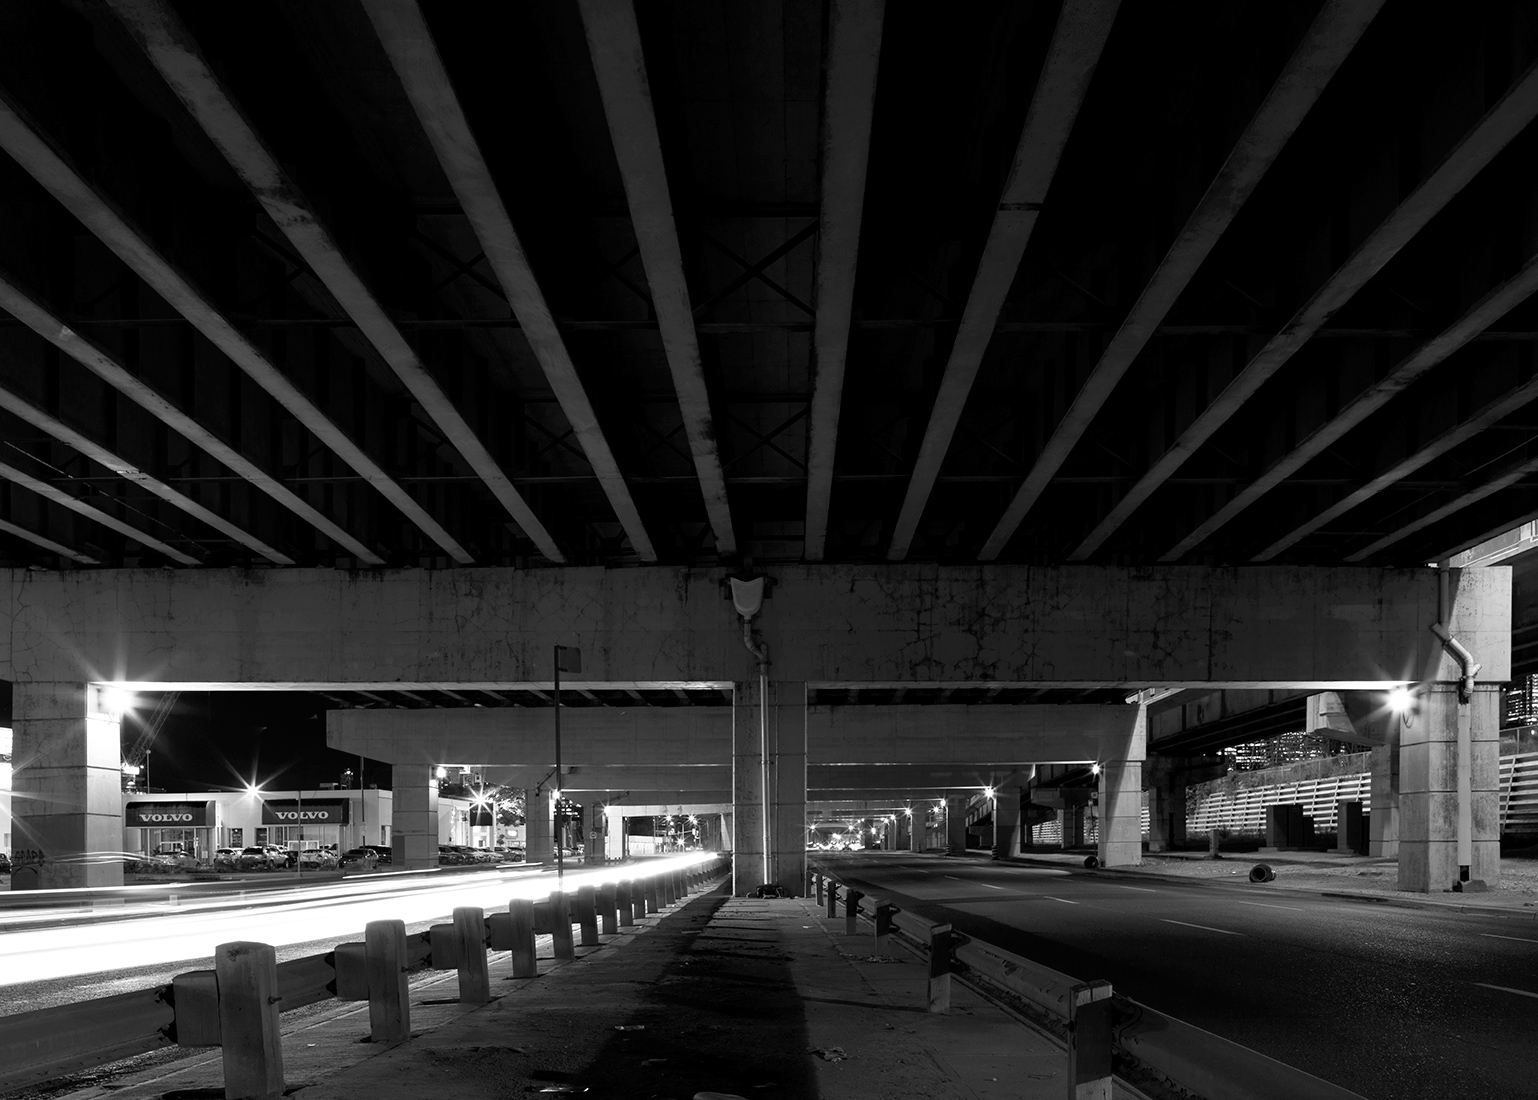 20160909. Night transforms Lake Shore Blvd E into a sub-freeway